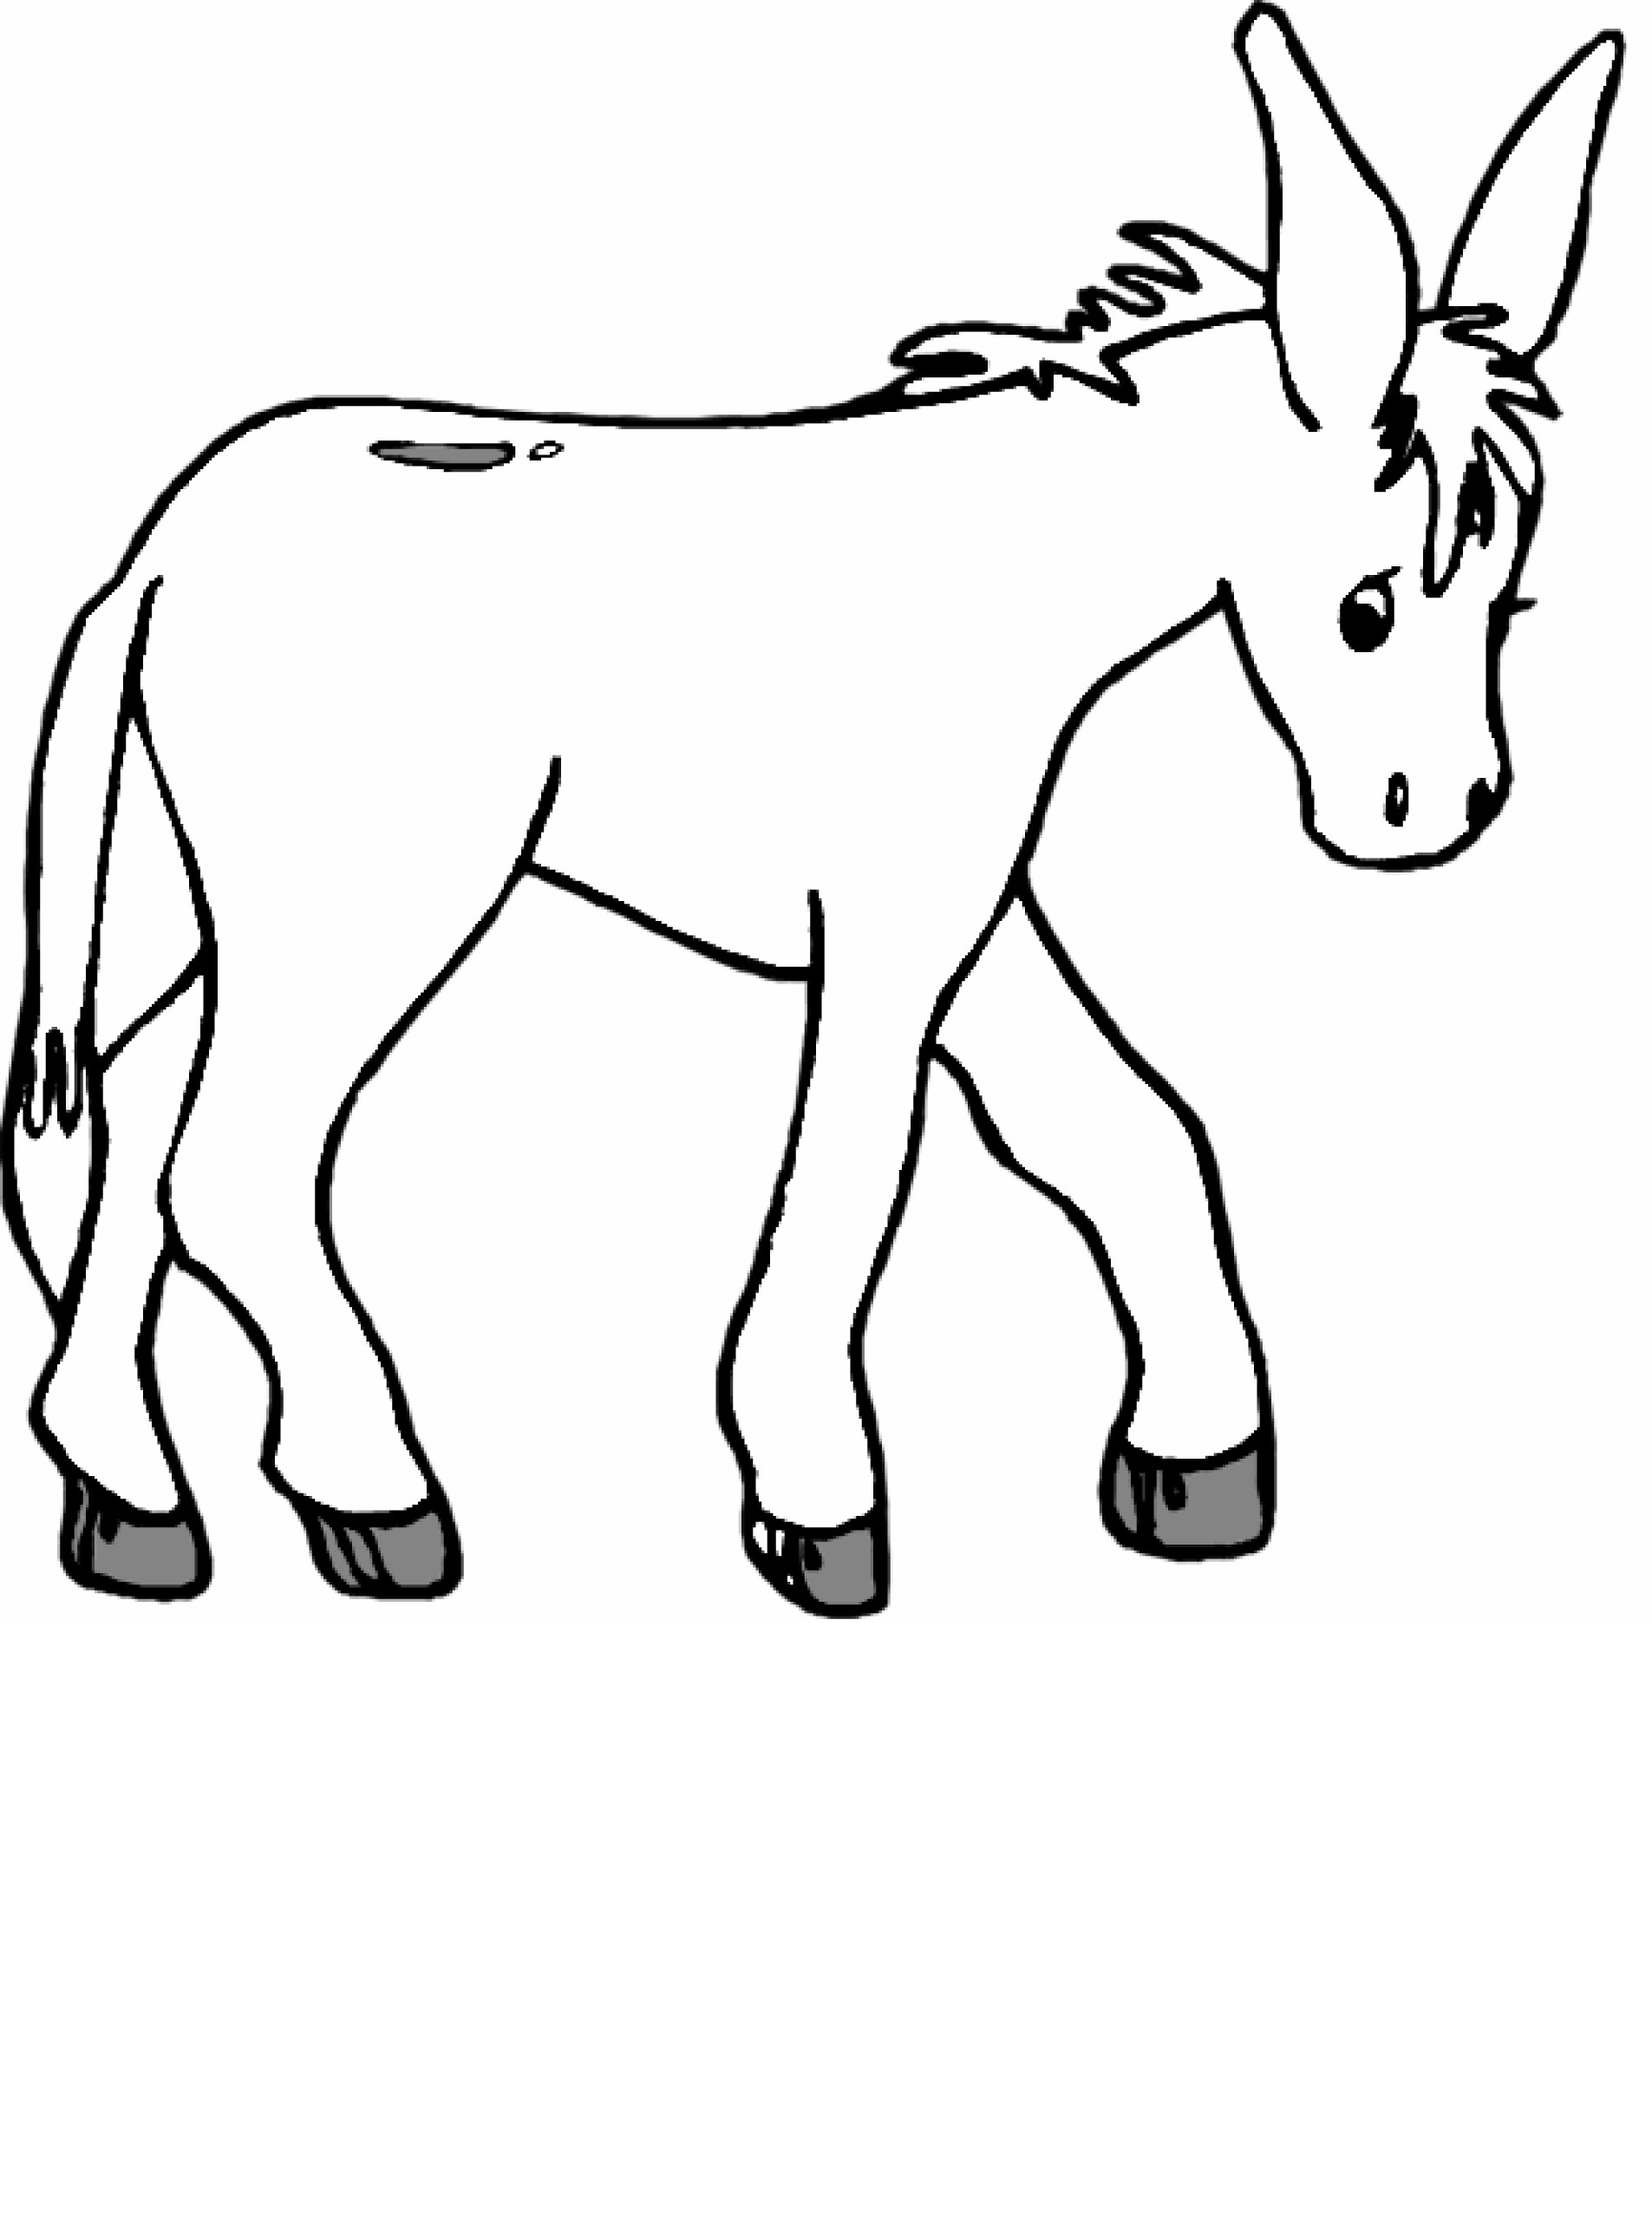 coloring donkey donkey coloring pages to download and print for free donkey coloring